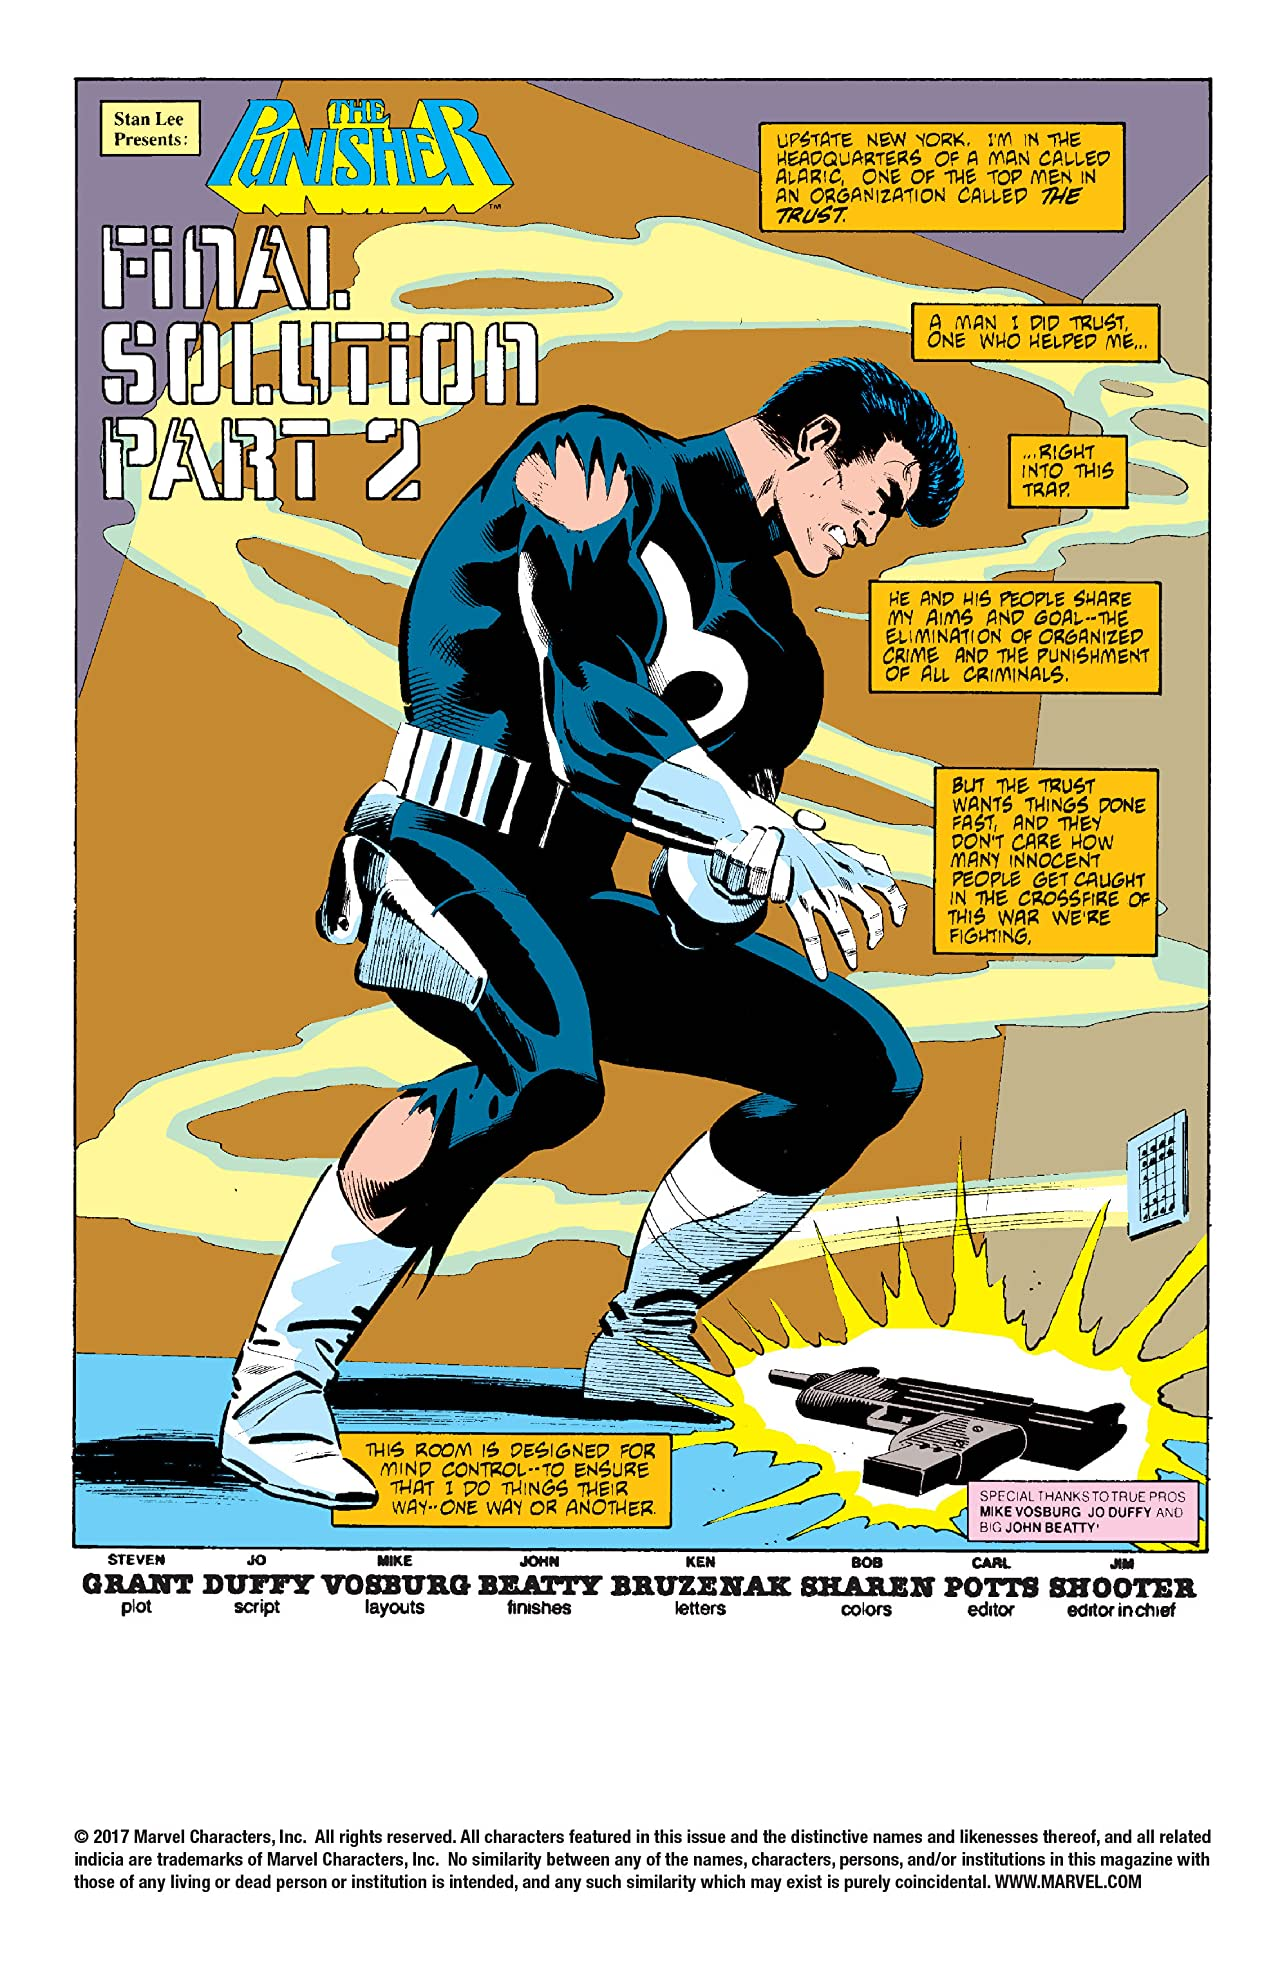 The Punisher (1986) #5 (of 5)